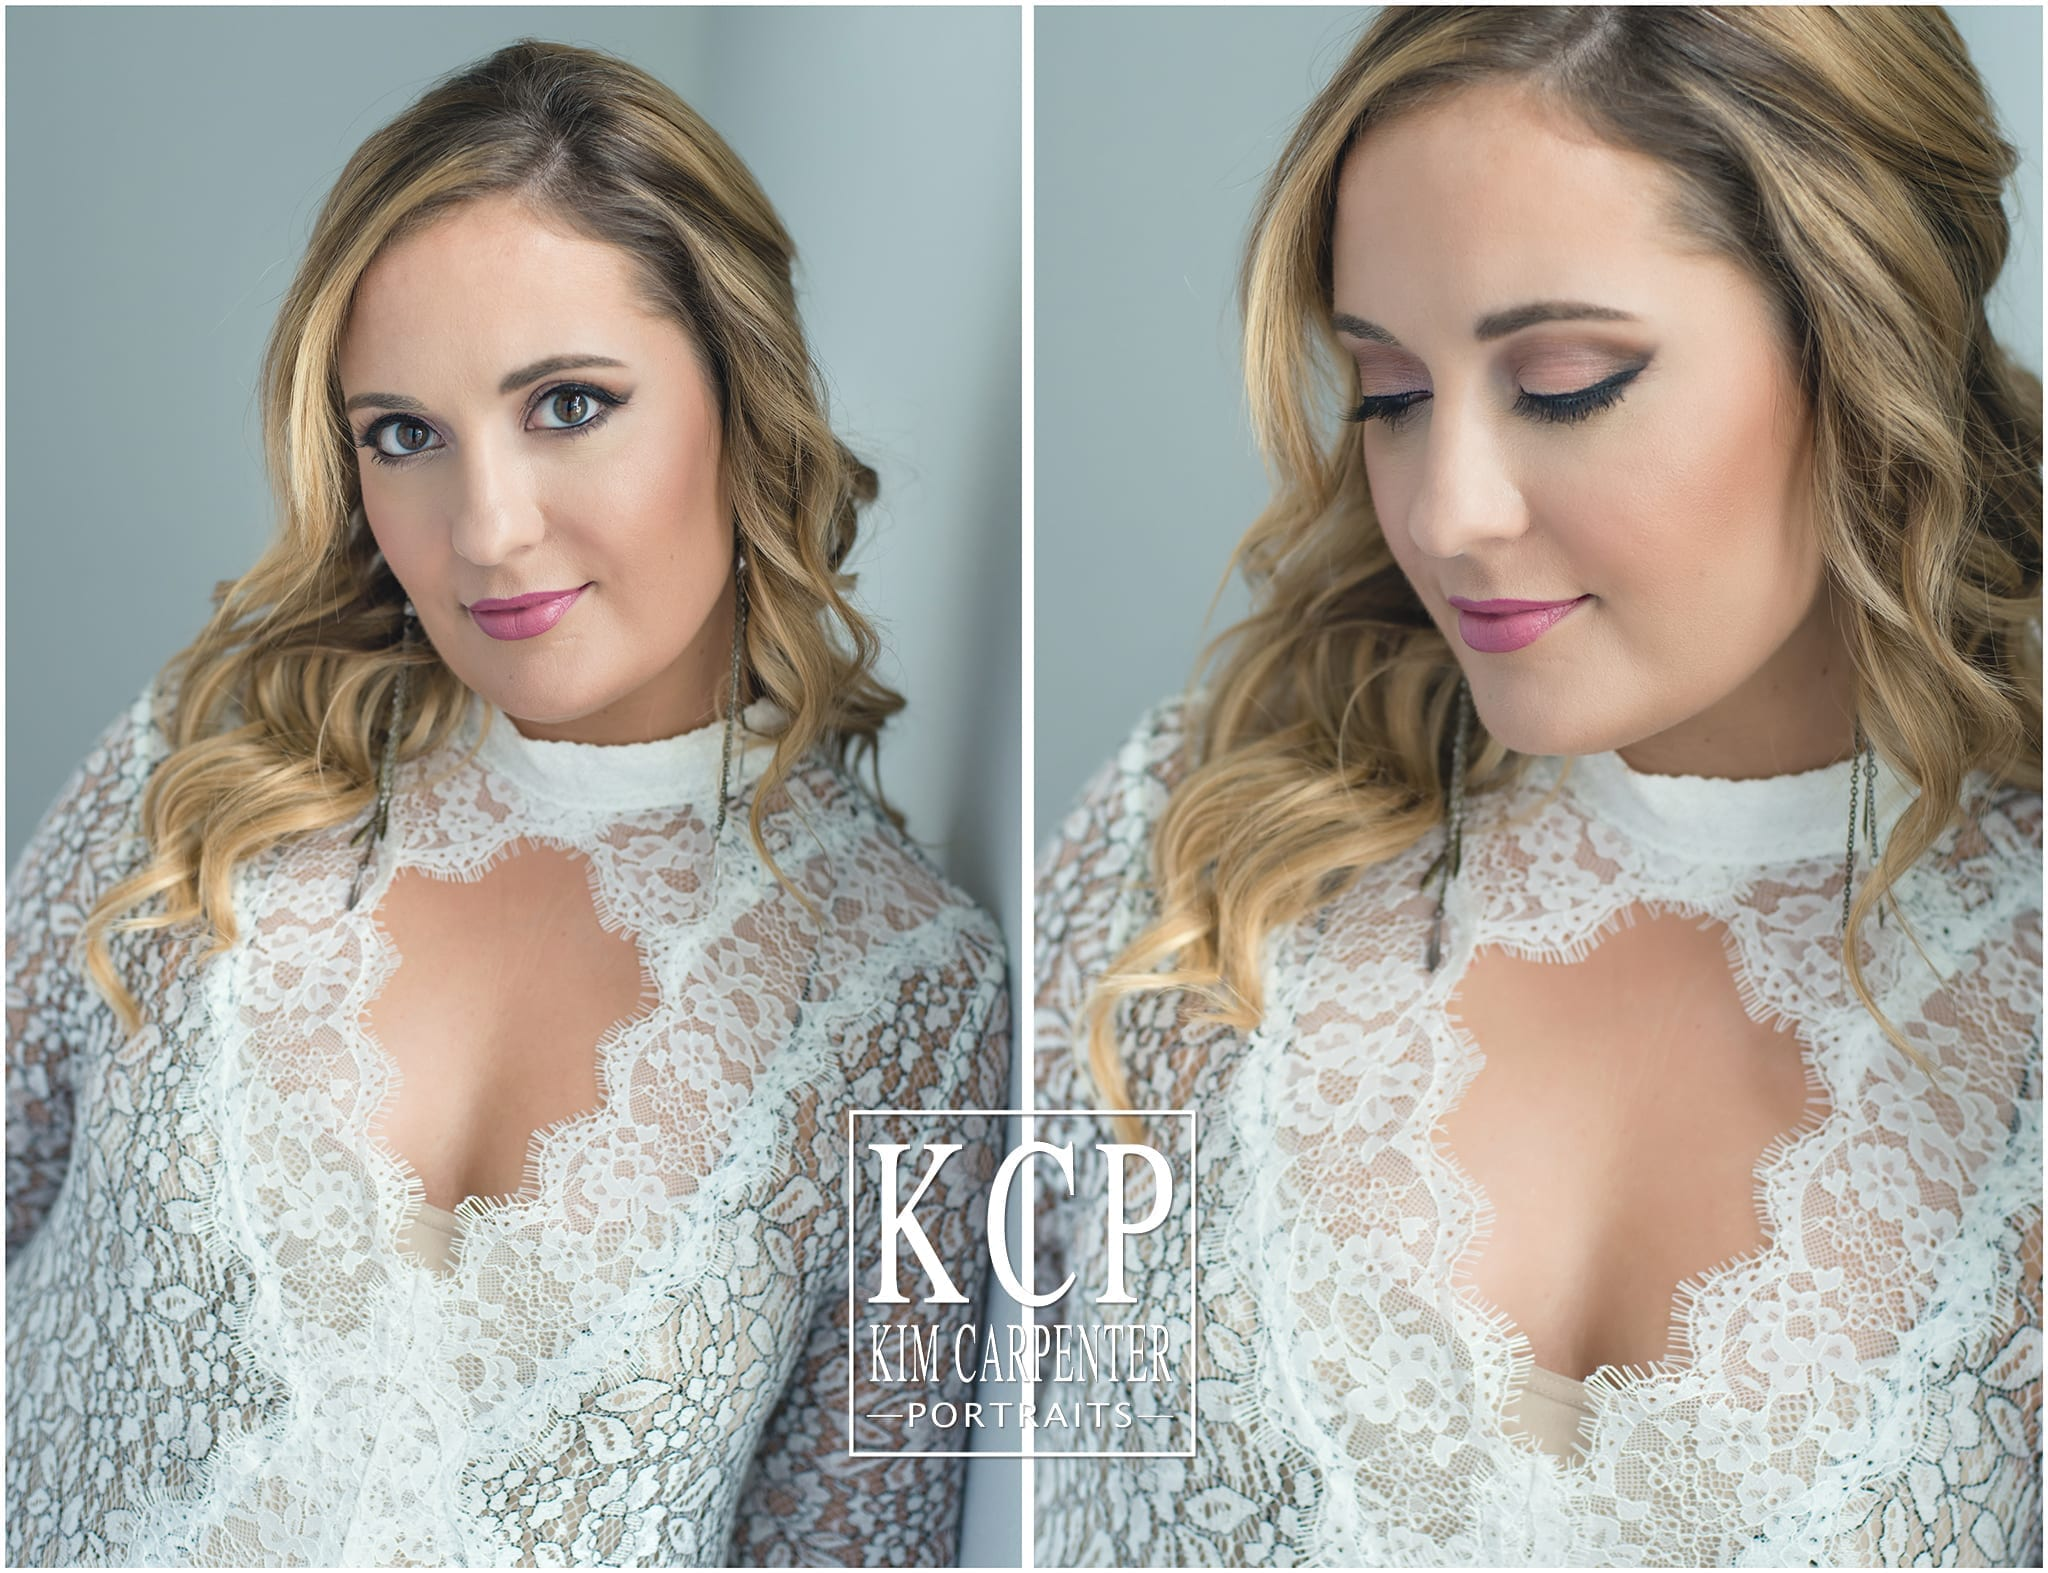 Lakeland Photographer - Kim Carpenter Portraits